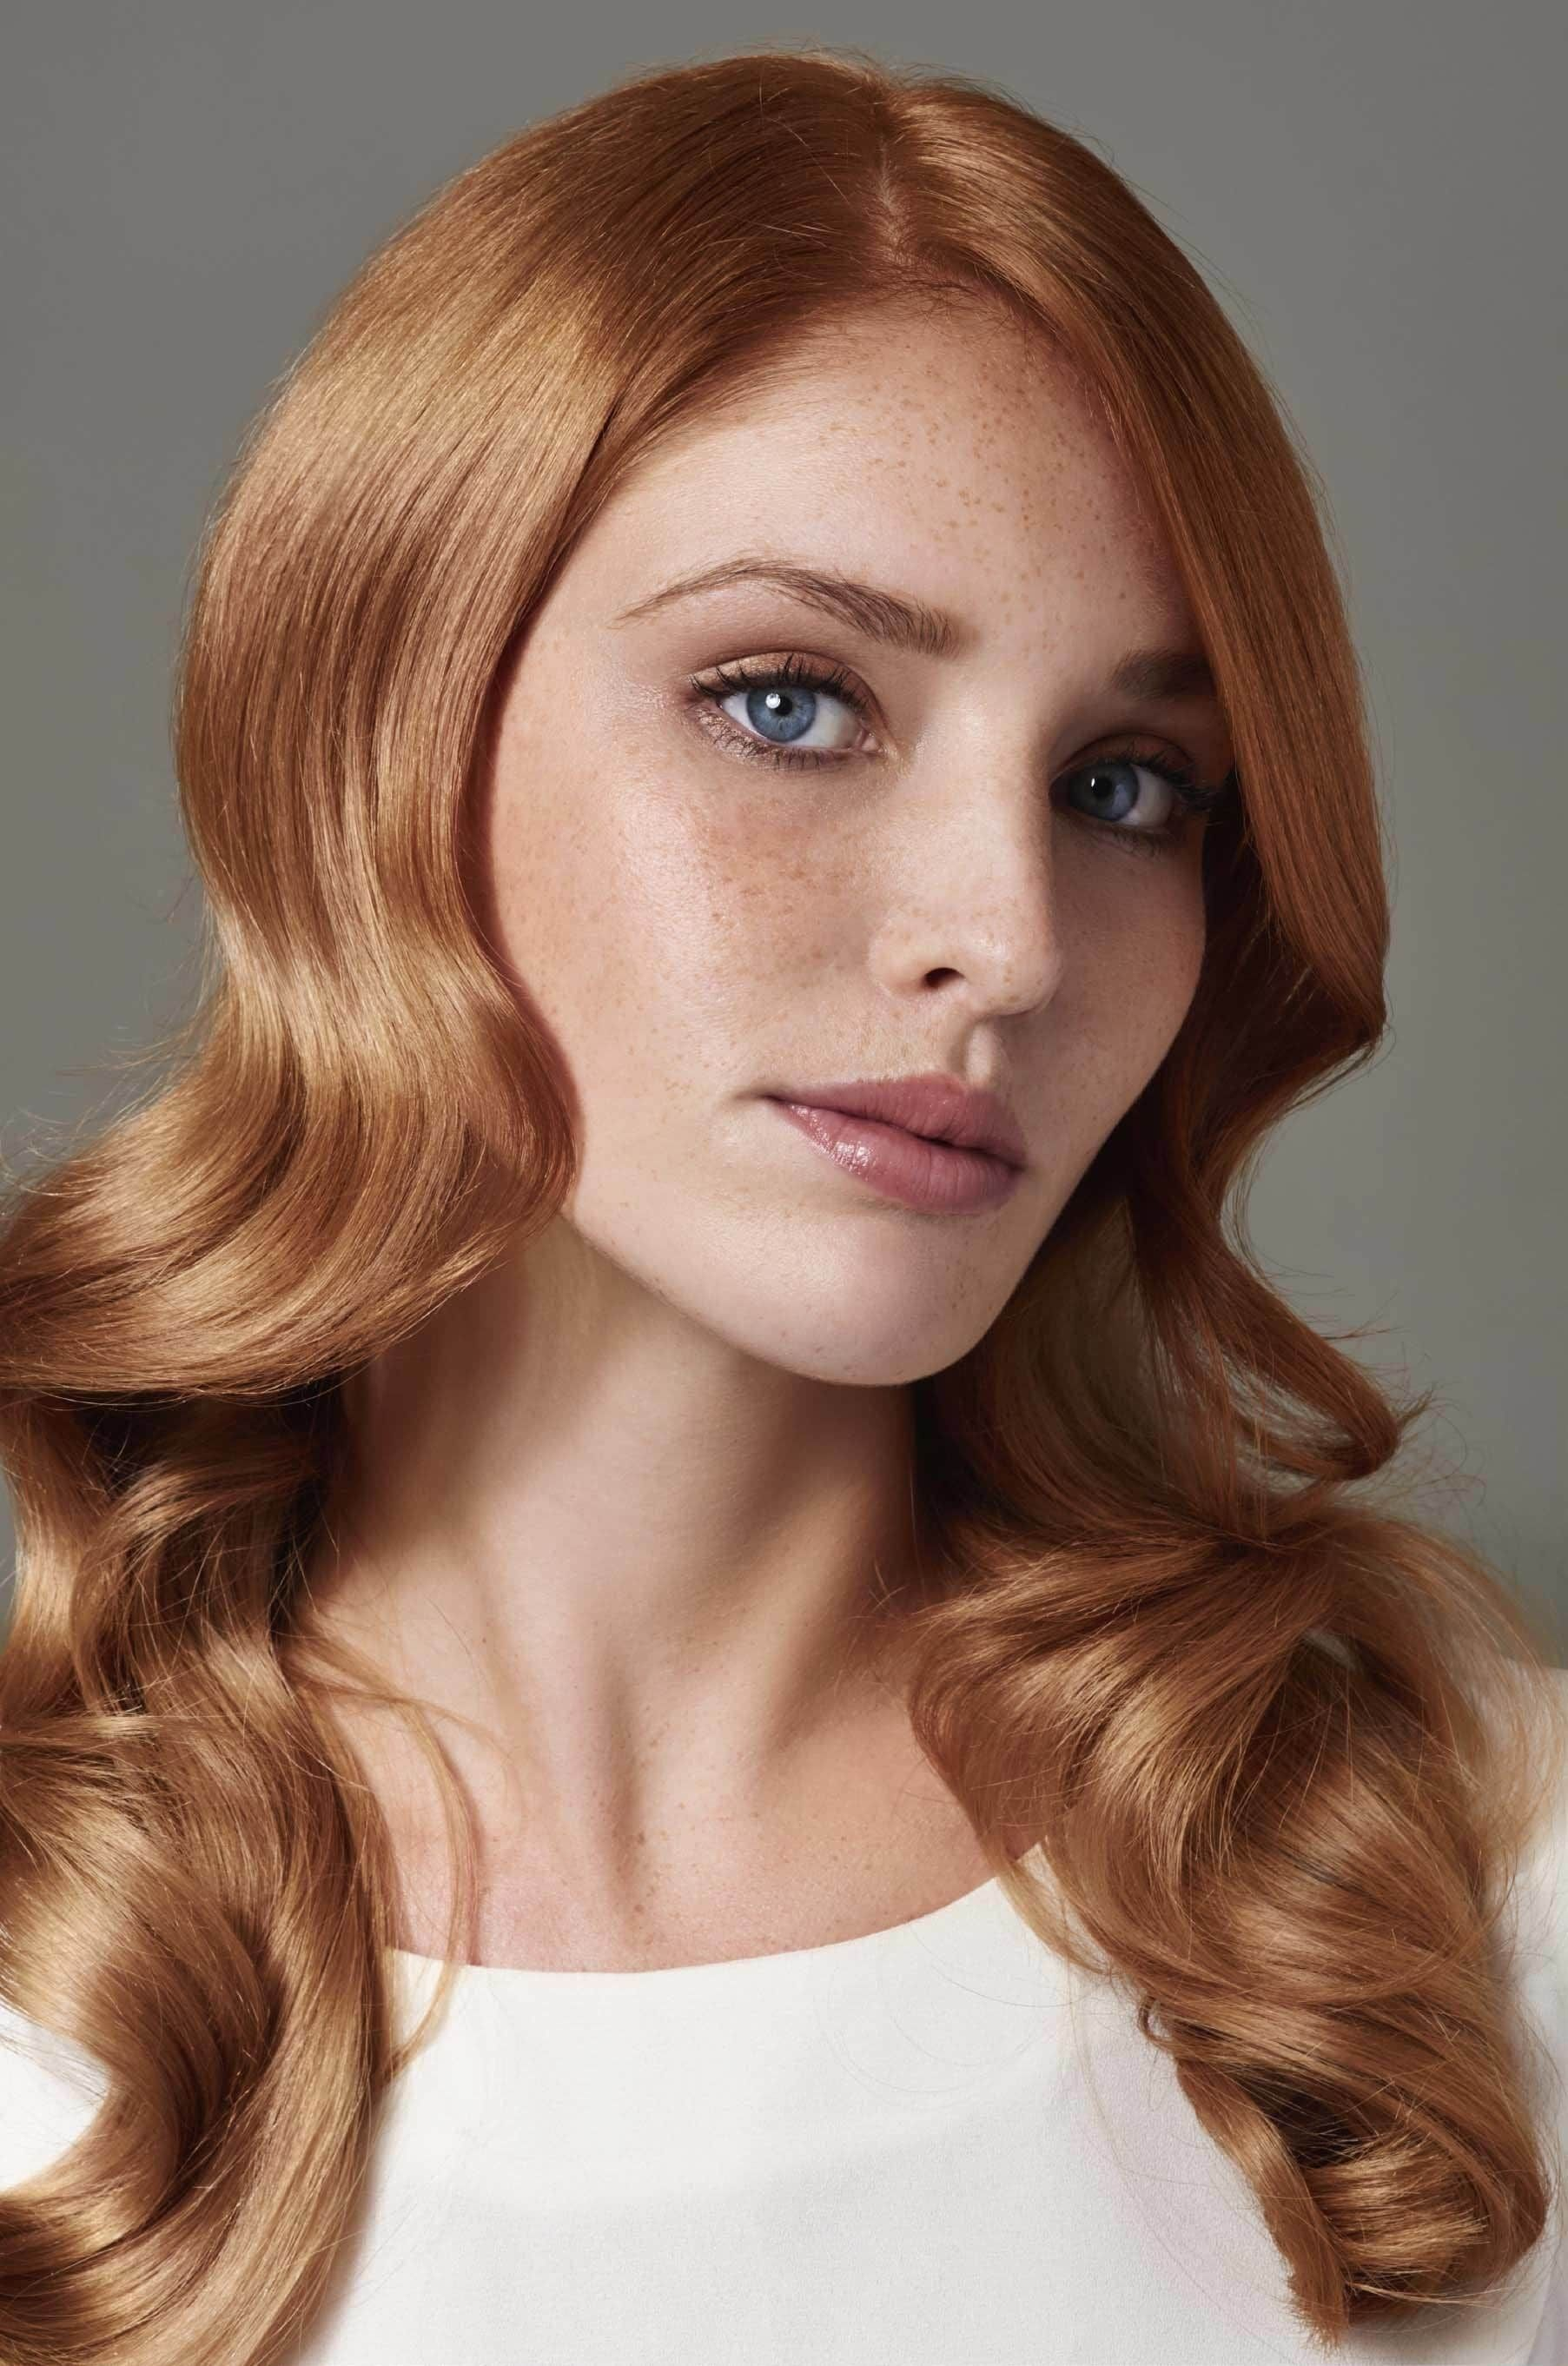 34 Best Red and Blonde Hairstyles and Haircuts for 2019 | Red blonde hair, Reddish  blonde hair, Strawberry blonde hair